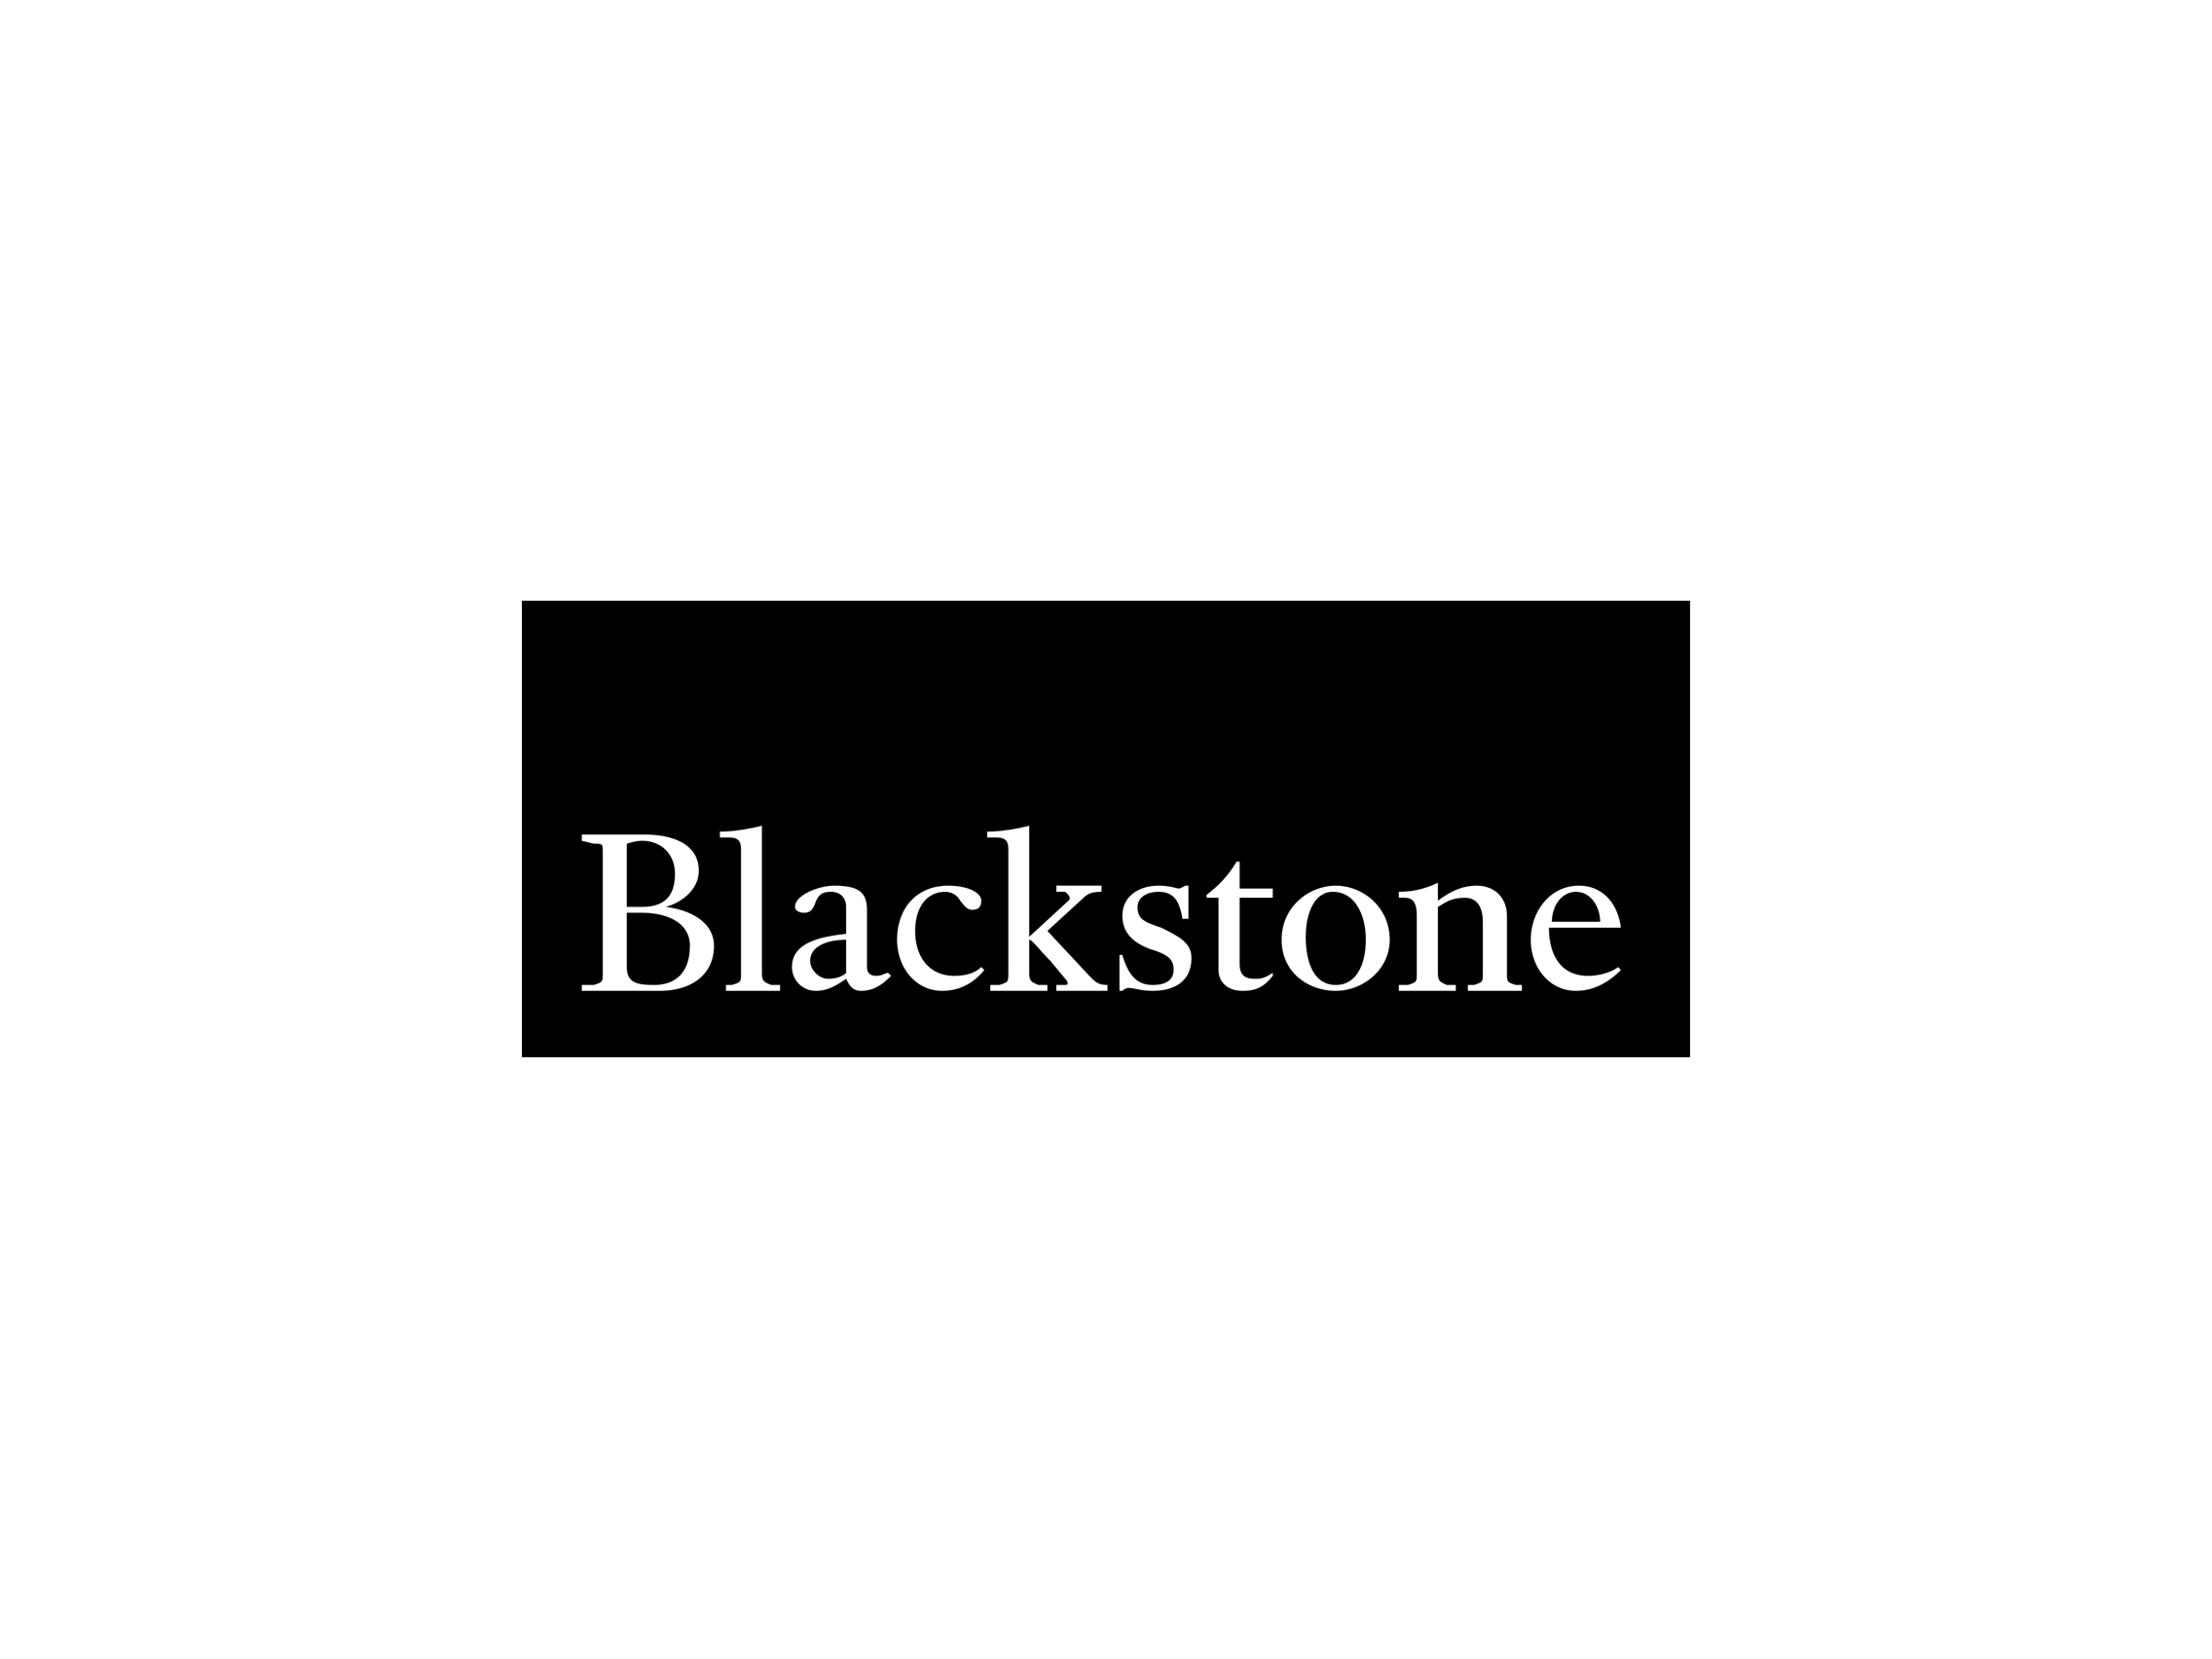 Blackstone & PIF of Saudi Arabia In An Infrastructure Investment Plan Of '$40 Billion'